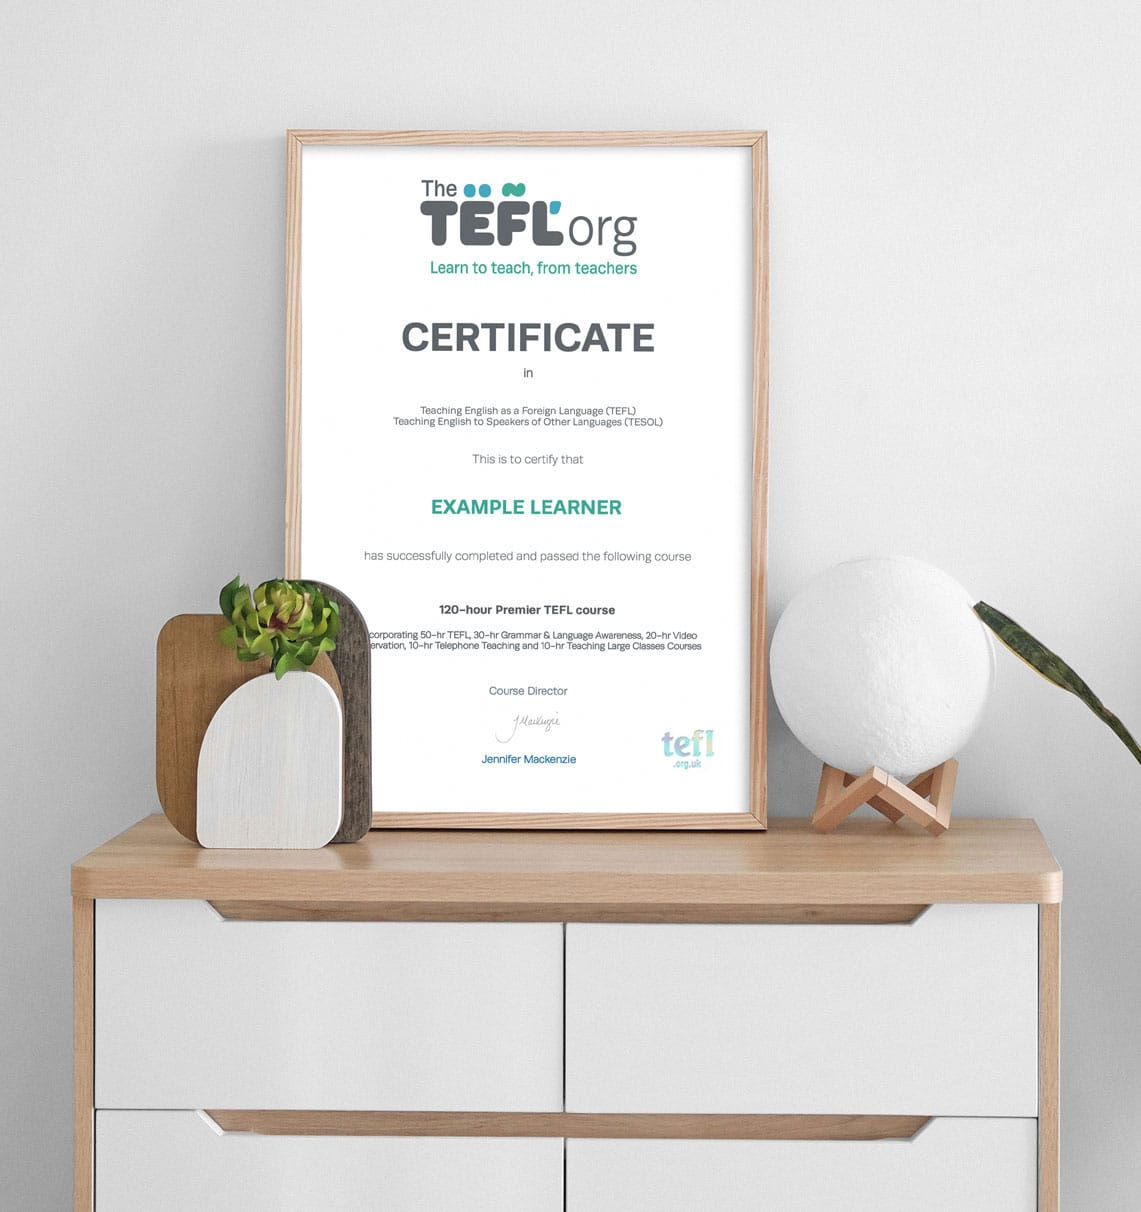 The TEFL Org Certificate on Cabinet